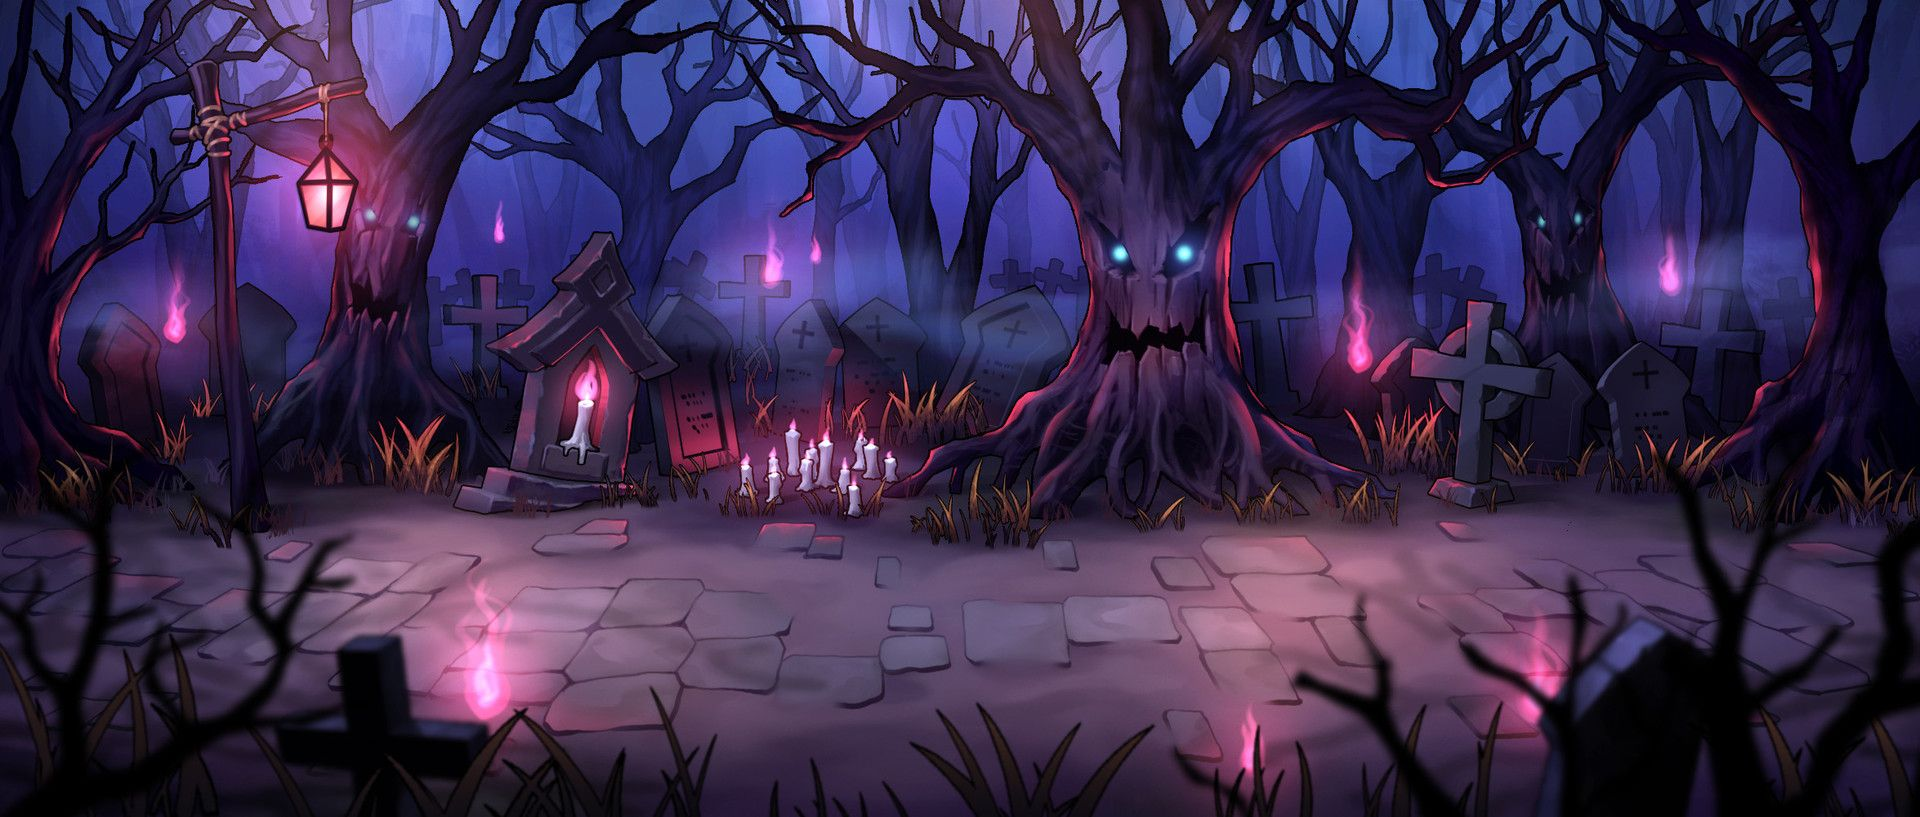 Mobile Game Background FreeMagician   Game background art Game 1920x817